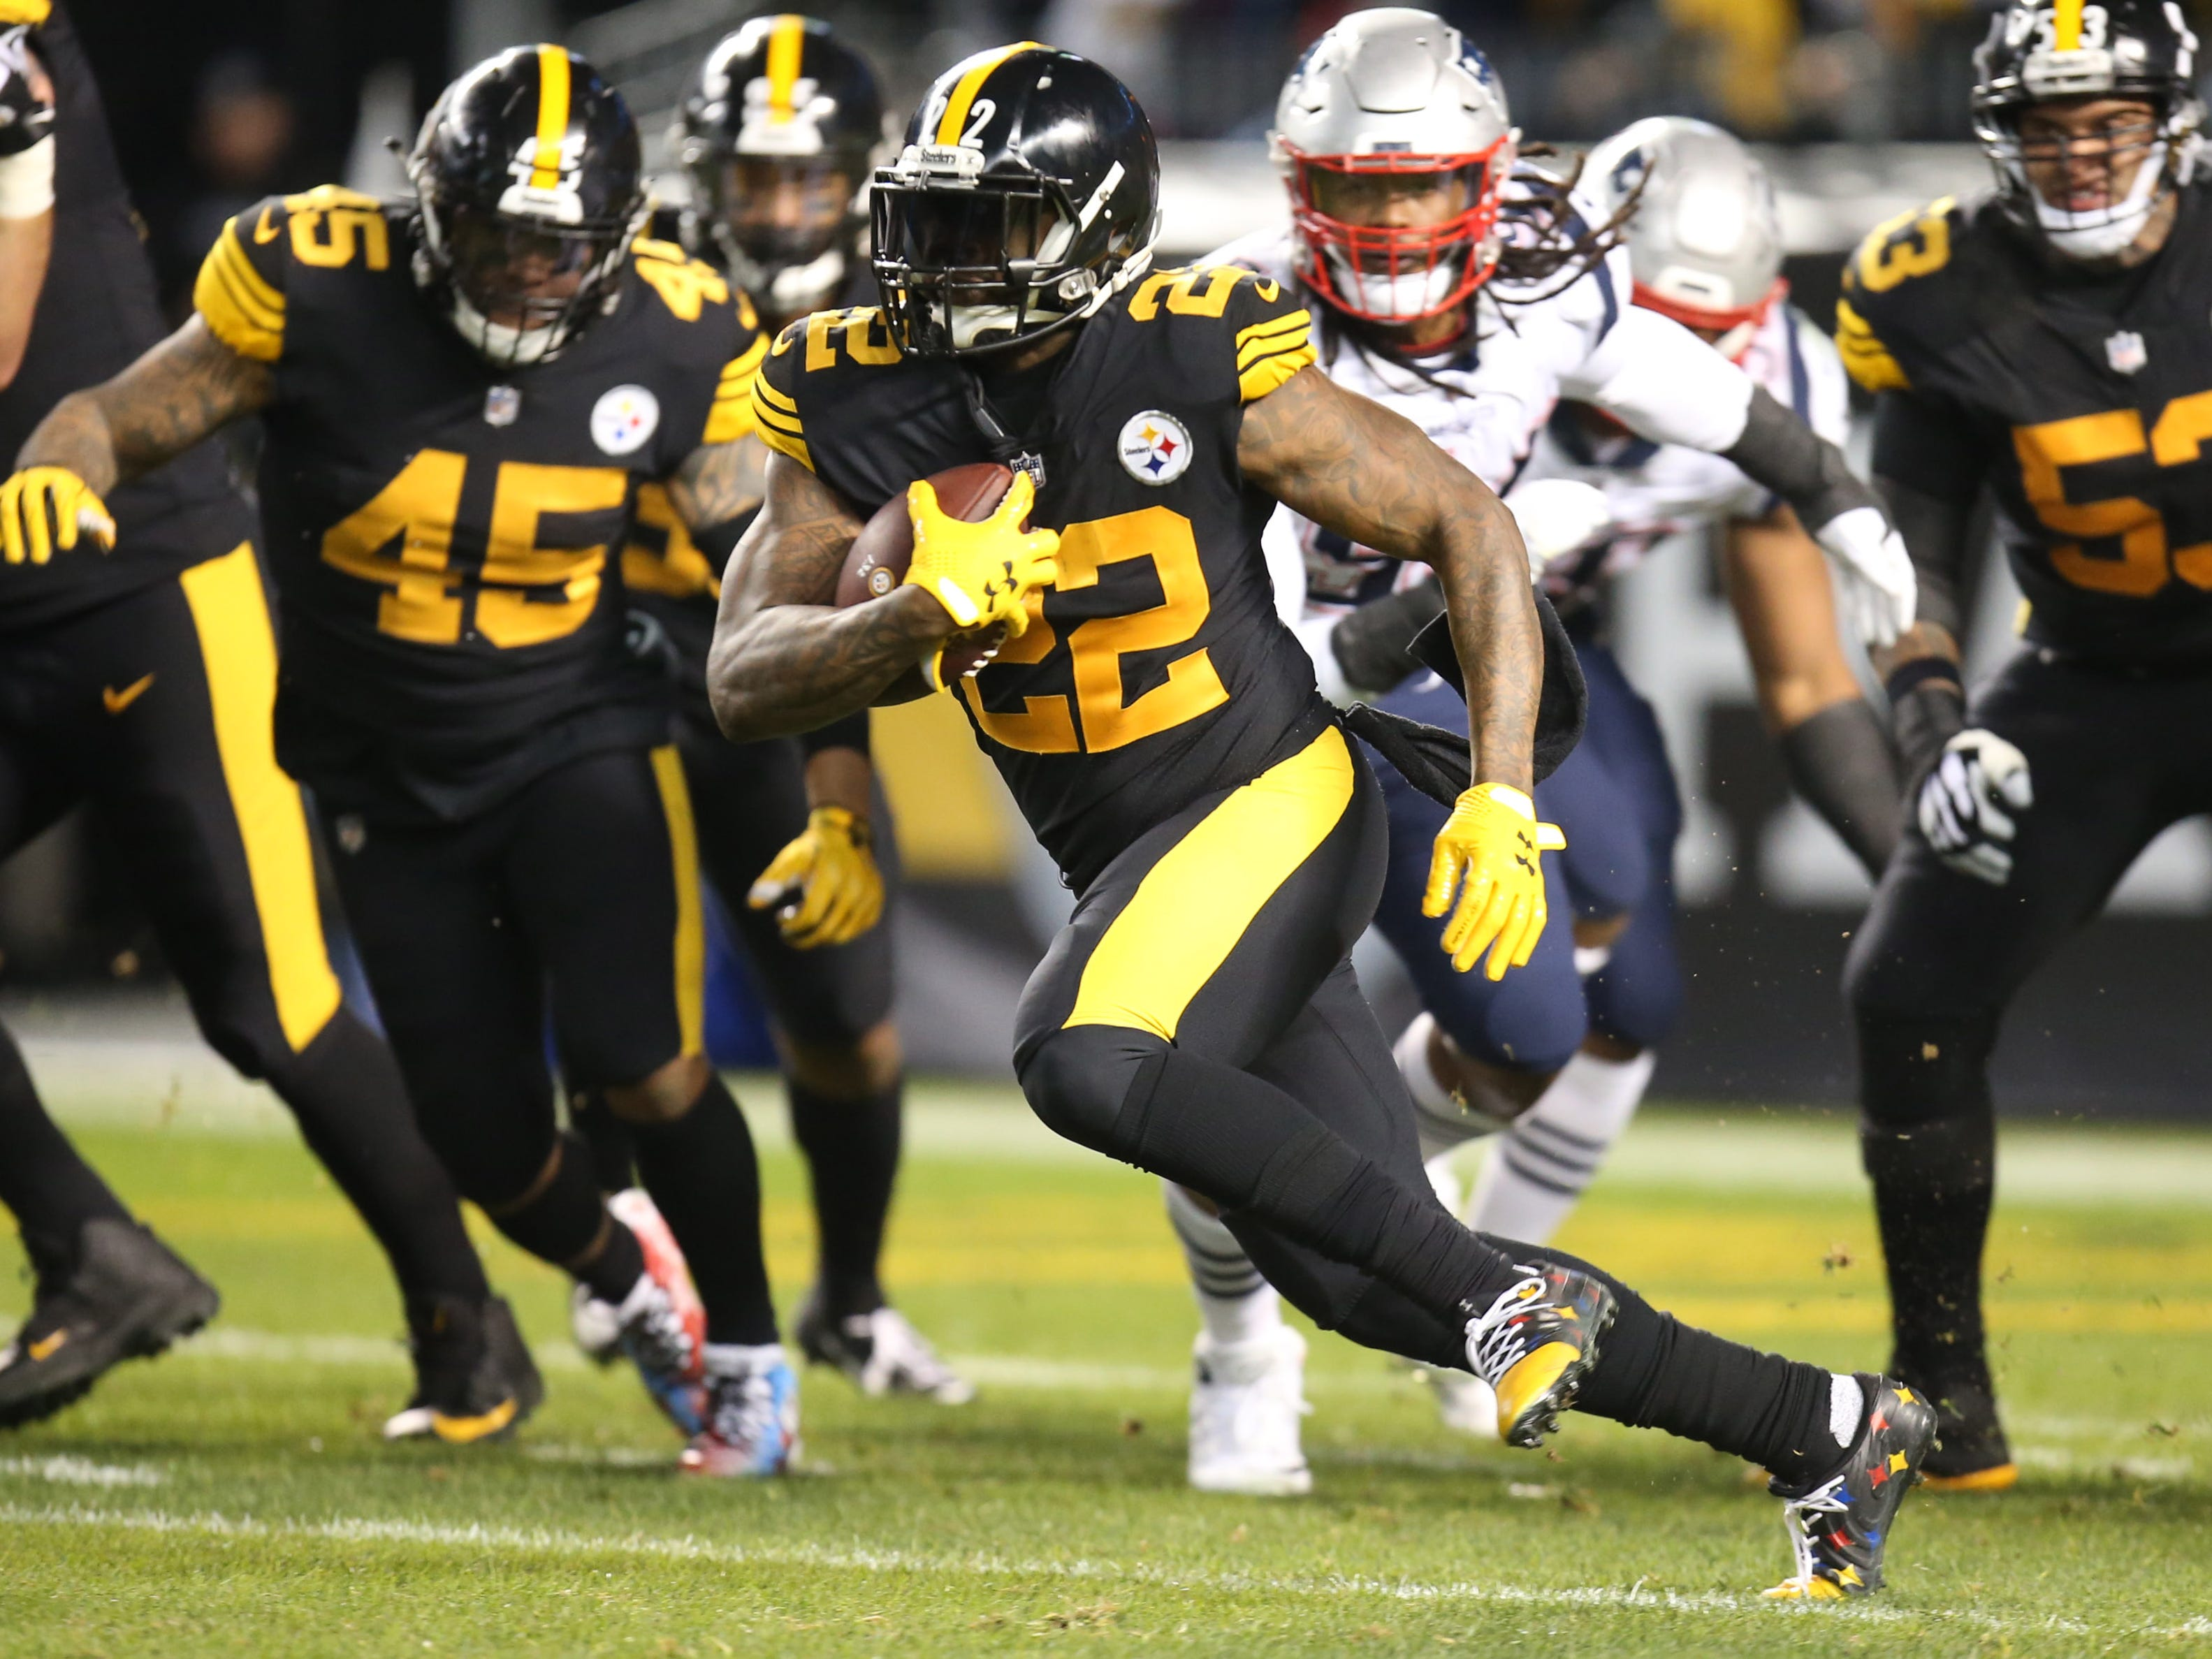 Pittsburgh Steelers running back Stevan Ridley rushes the ball against the New England Patriots during the second quarter at Heinz Field.